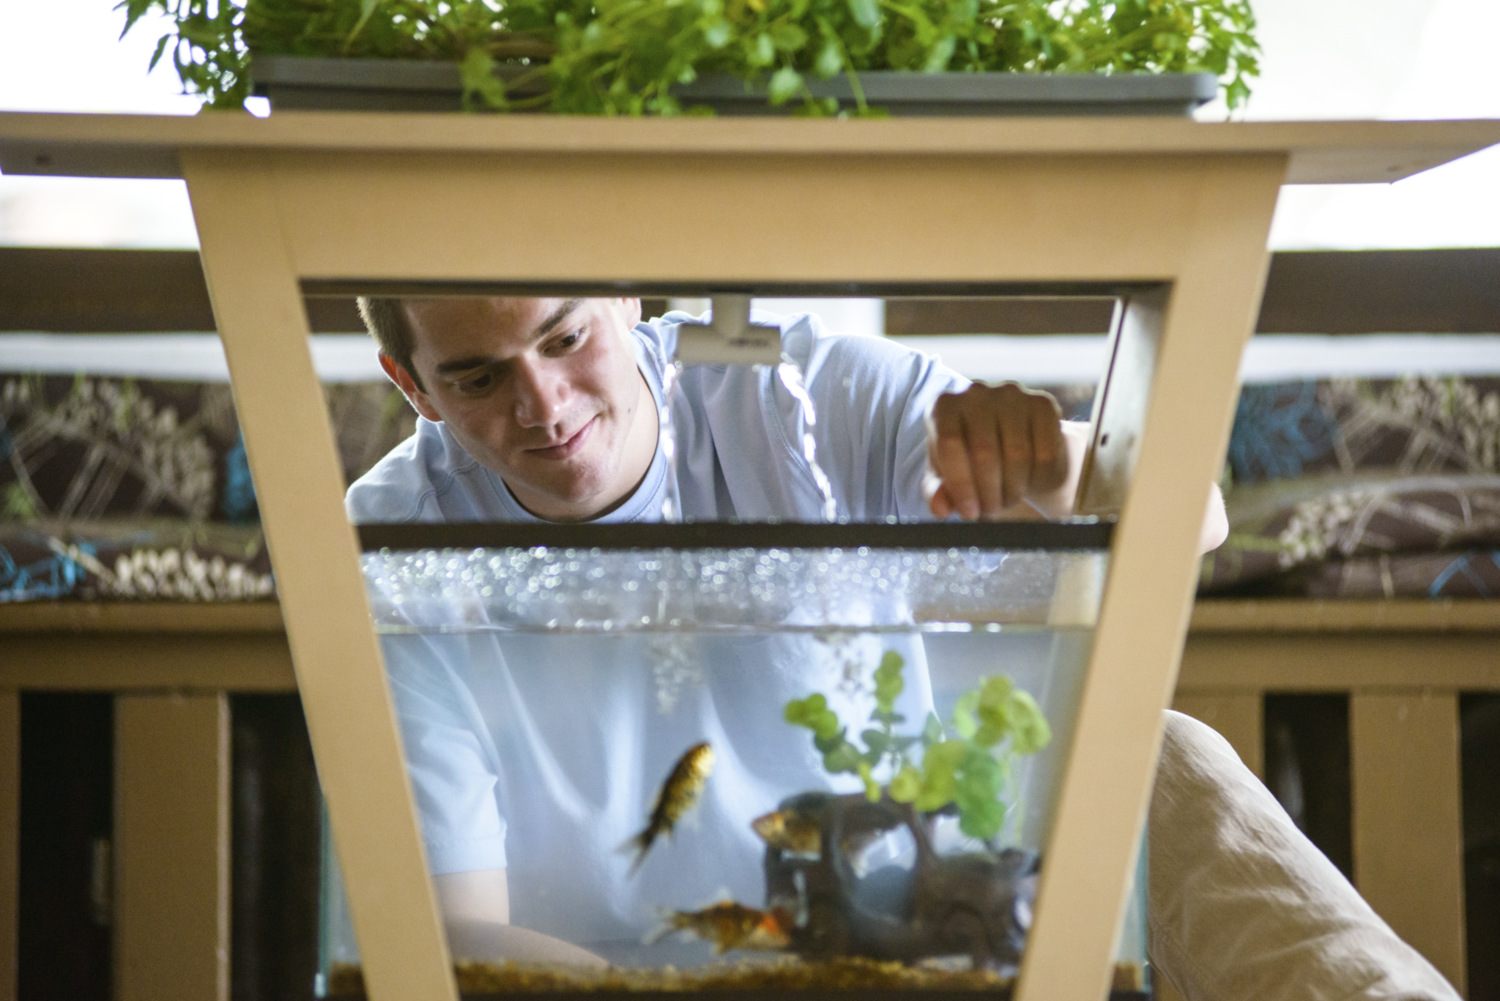 Living Furniture How The Aquaponic Table Came To Be The Urban Vertical Farming Project